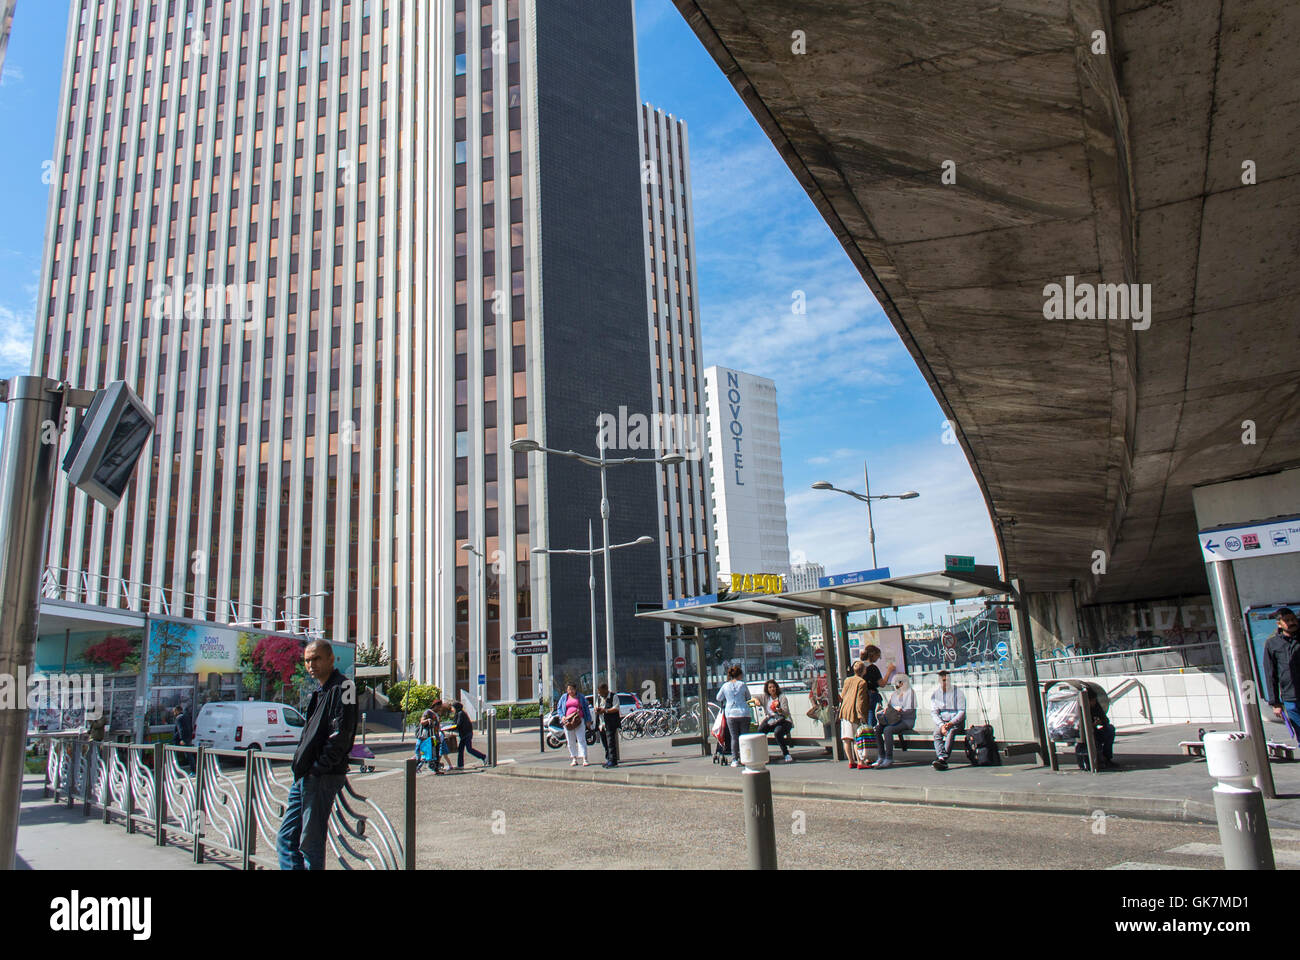 Modern Architecture France bagnolet, france, paris suburbs, street scene, modern architecture